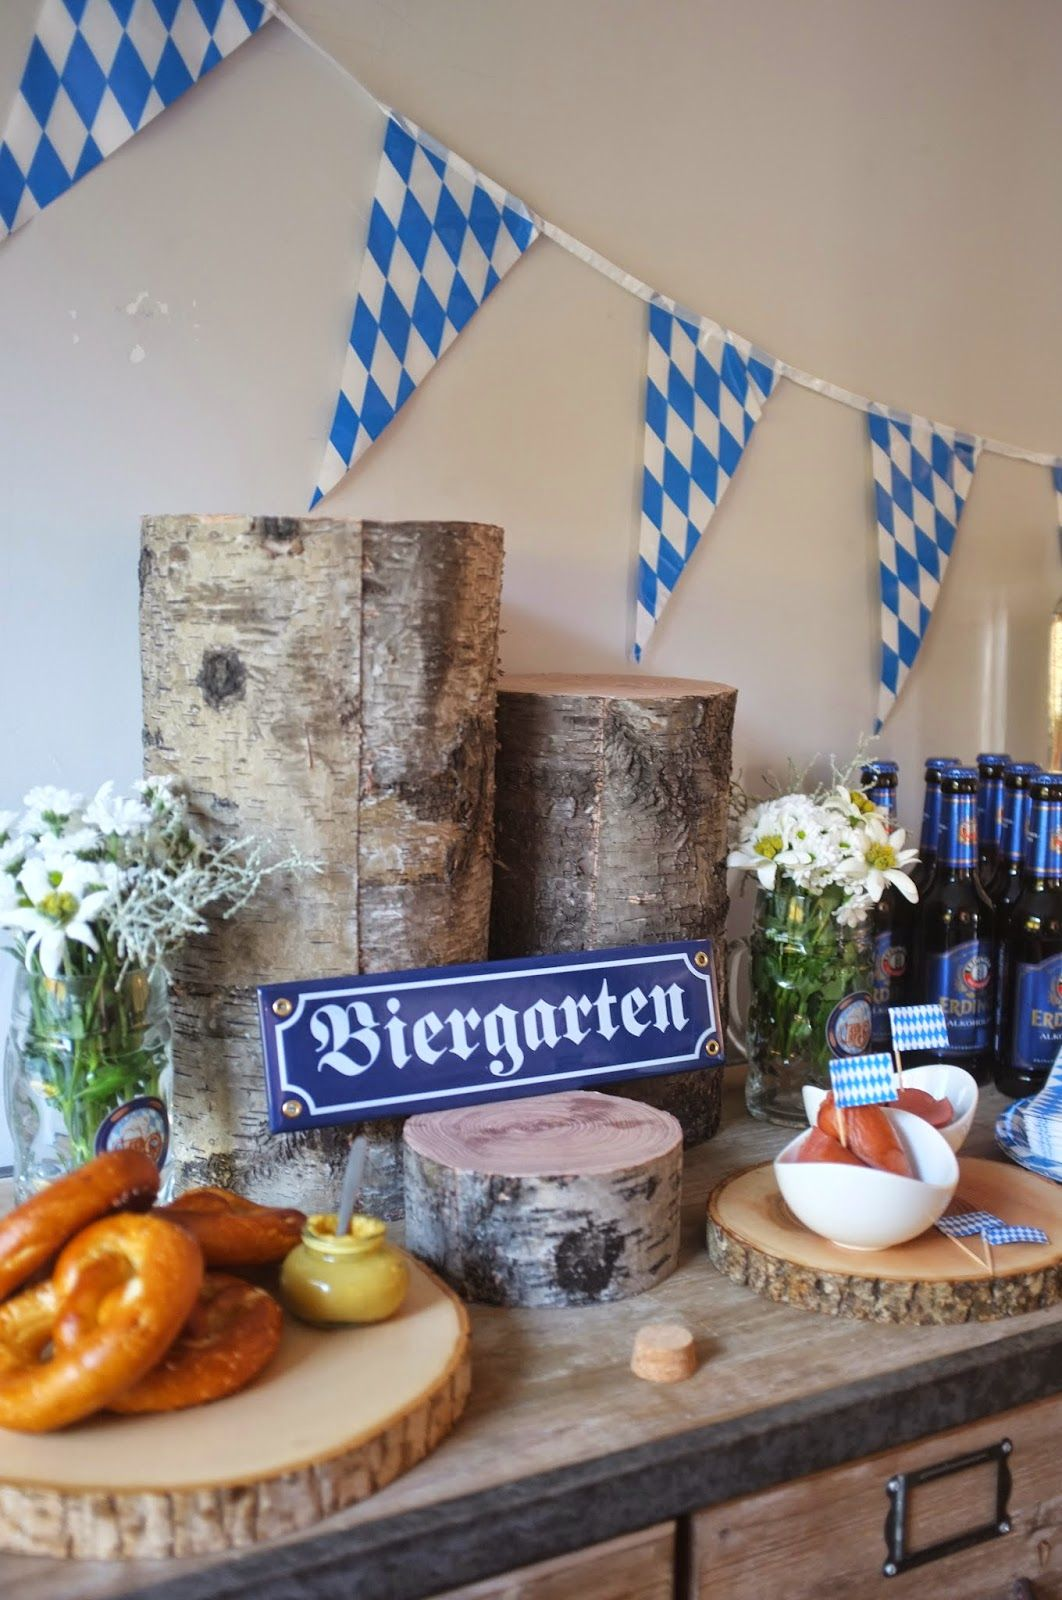 oktoberfest food decorative pinte. Black Bedroom Furniture Sets. Home Design Ideas